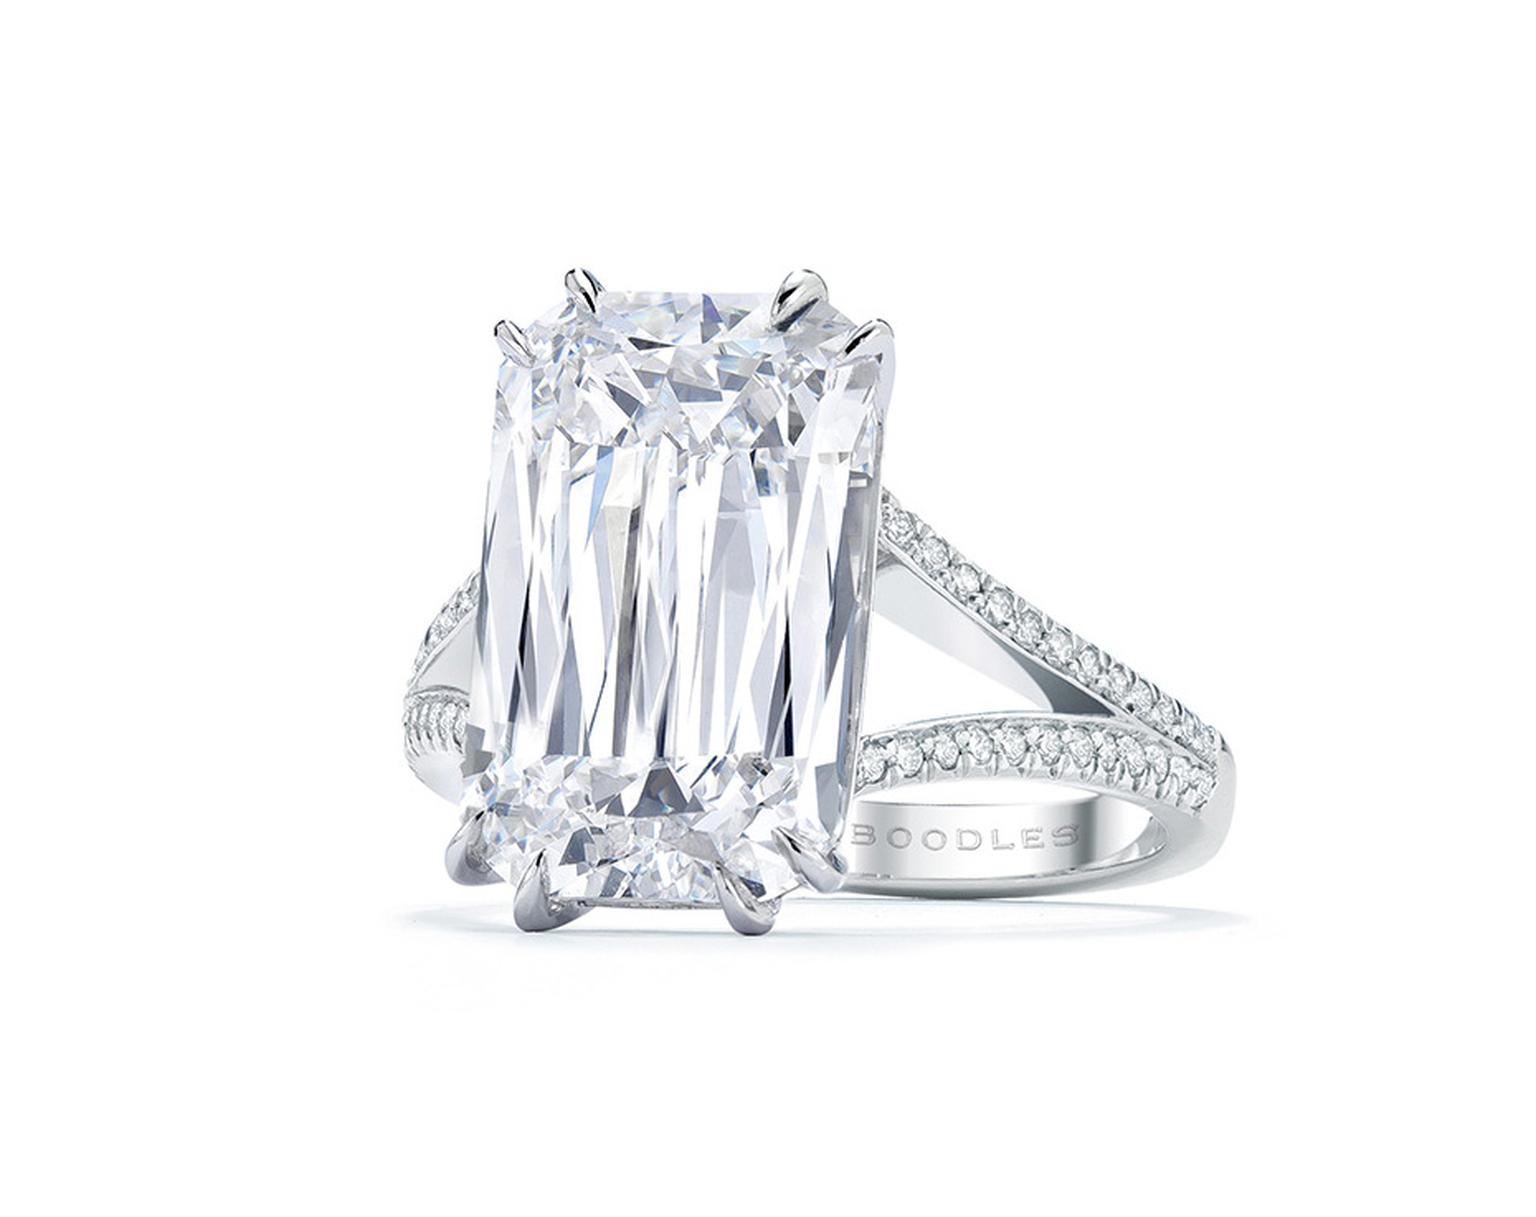 Boodles Ashoka diamond engagement ring.